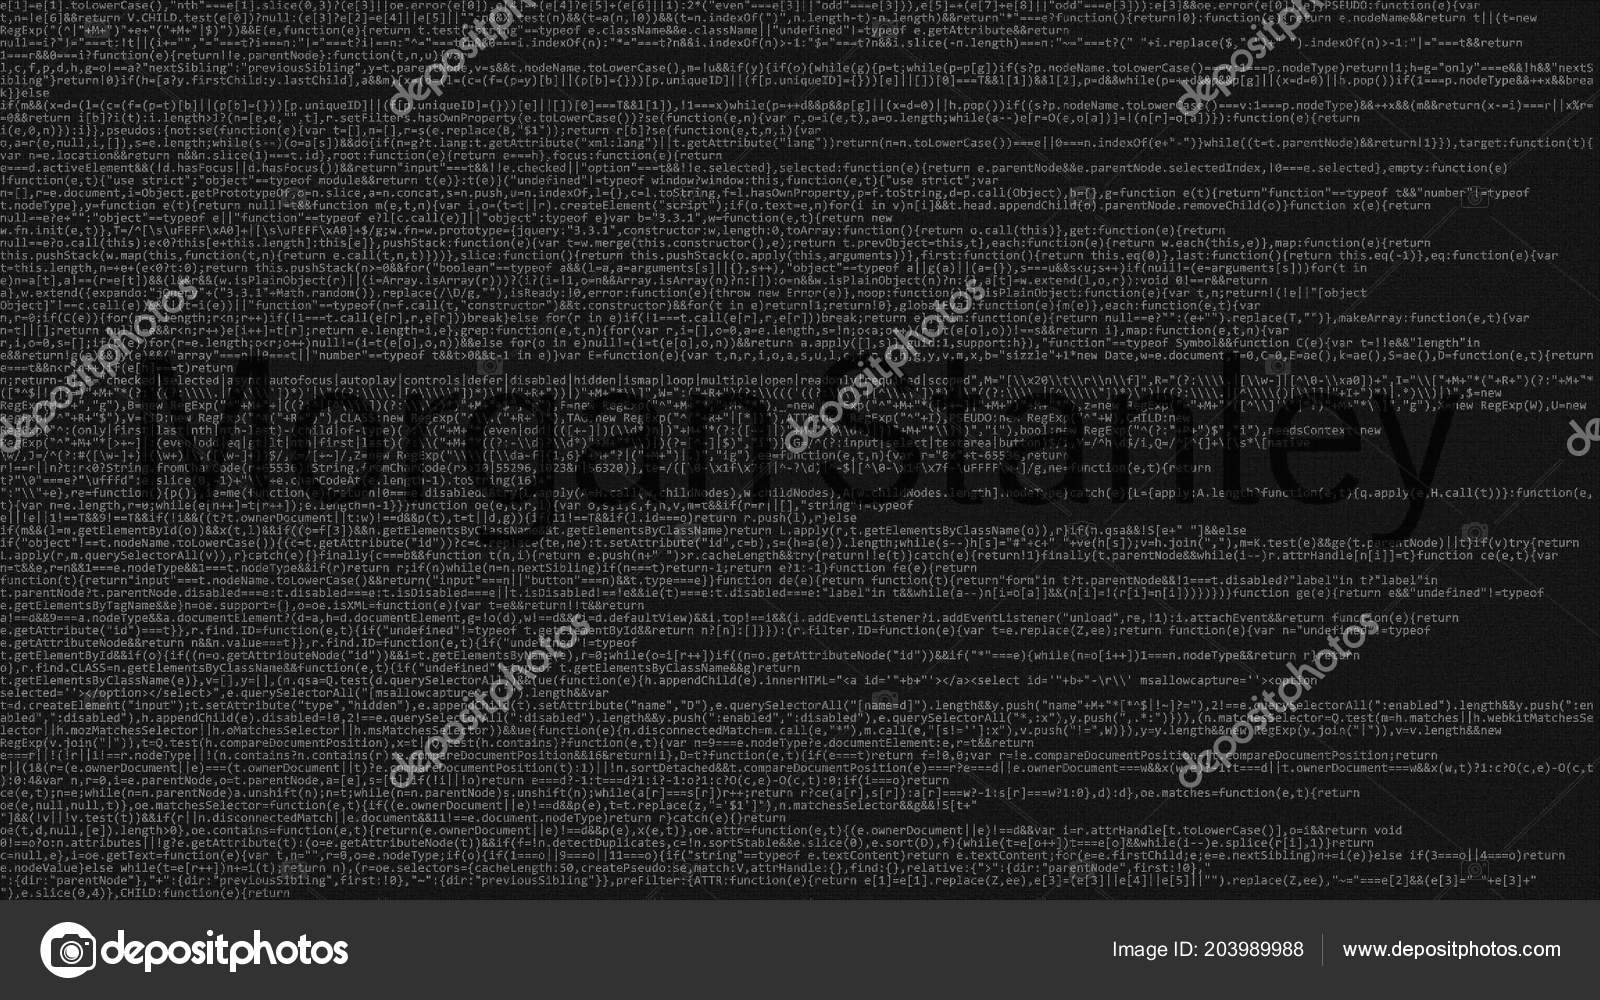 Morgan Stanley logo made of source code on computer screen